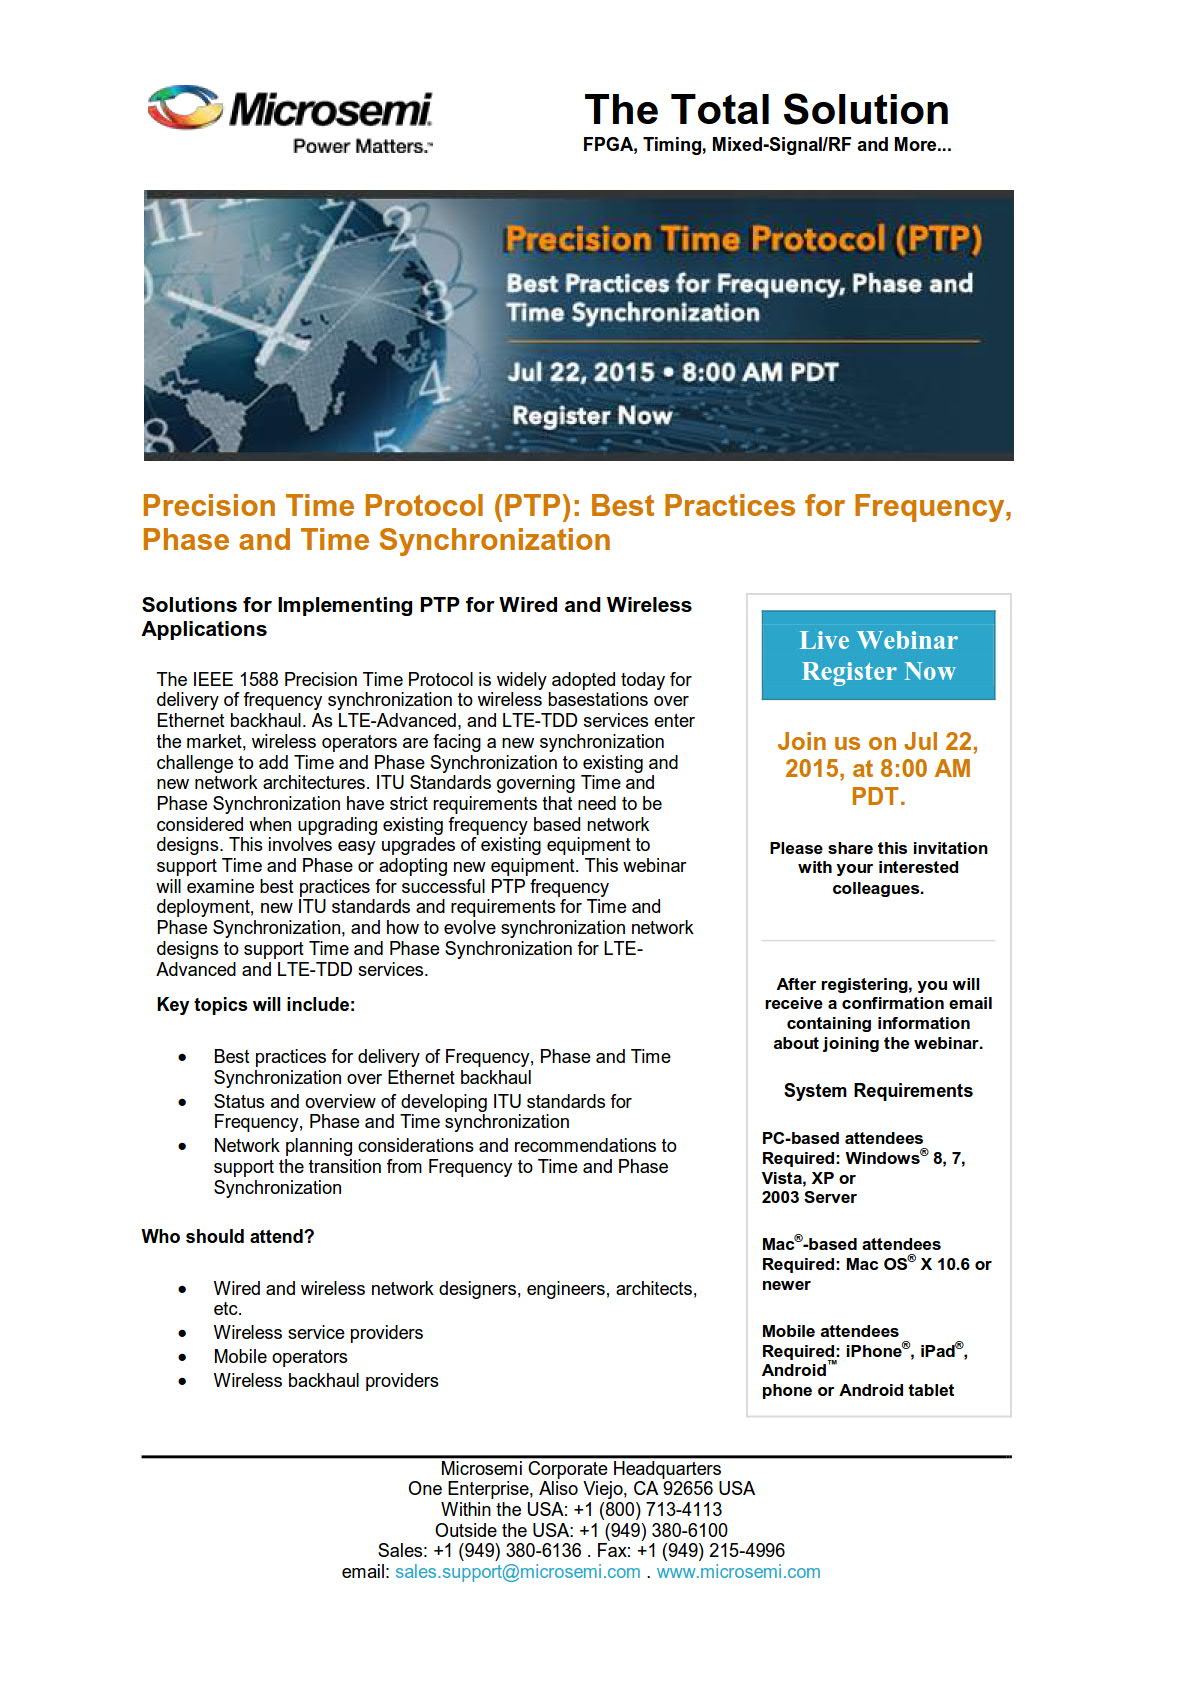 Precision Time Protocol (PTP): Best Practices for Frequency, Phase and Time Synchronisation